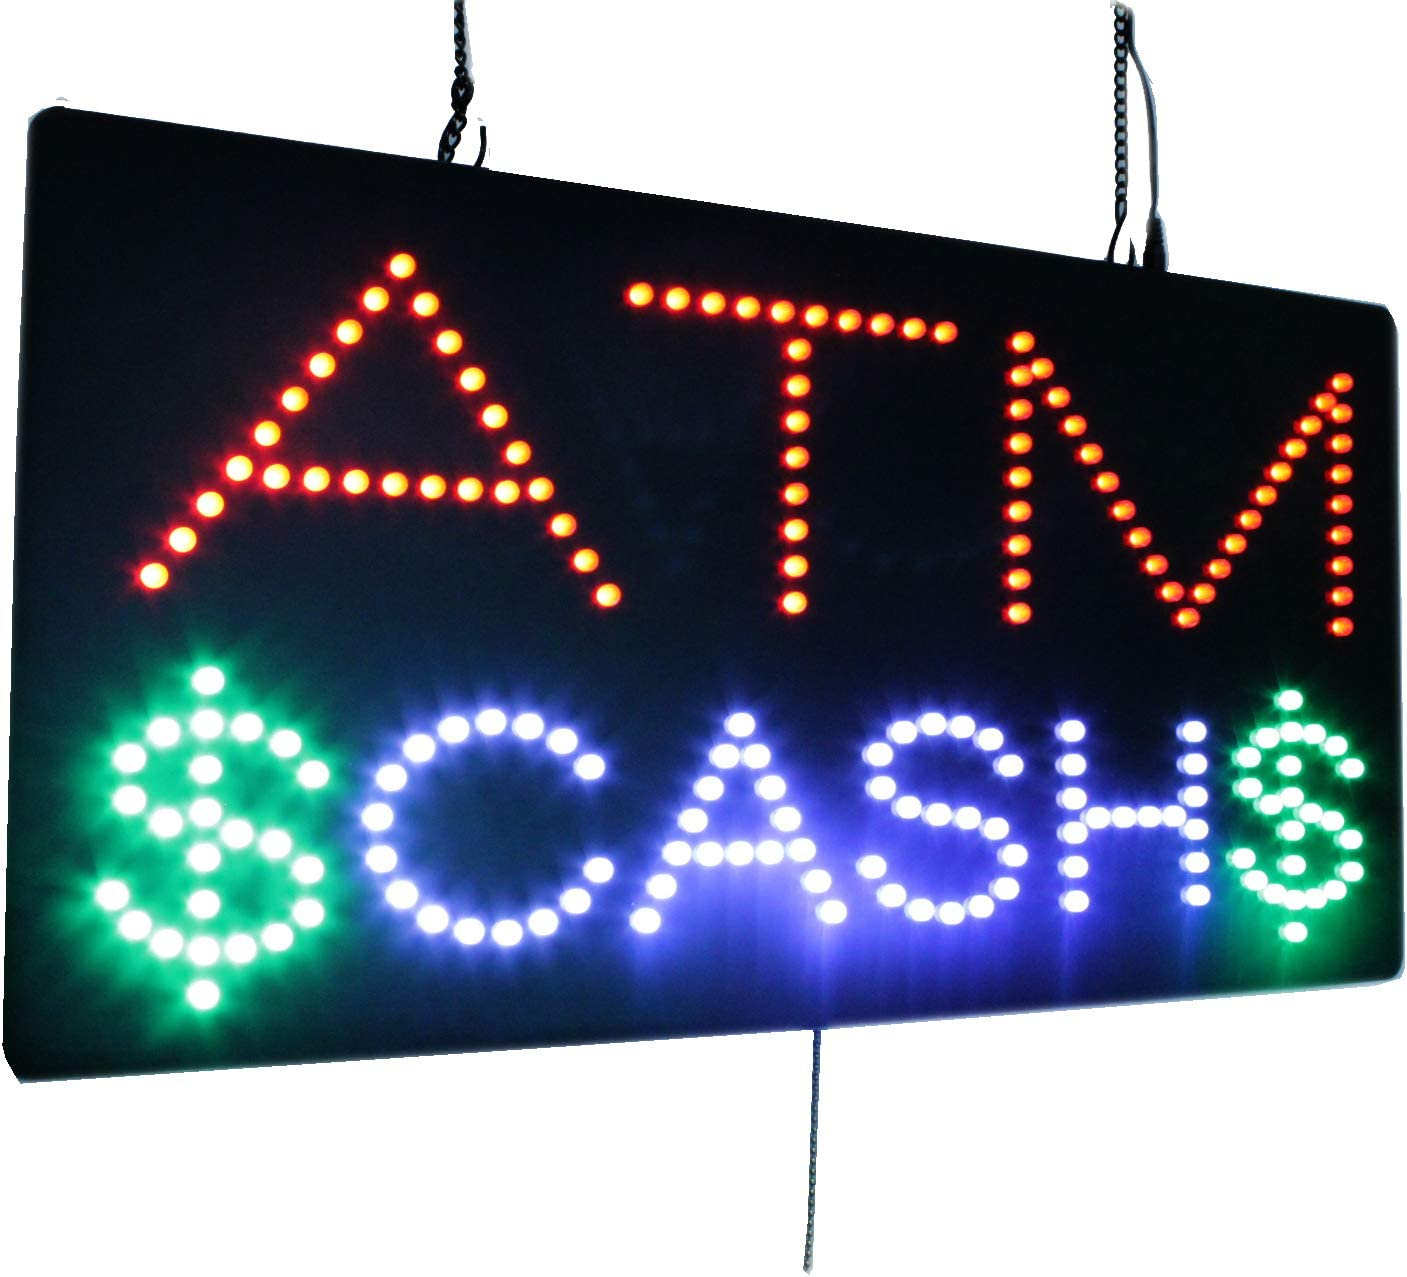 ATM Cash Sign, TOPKING Signage, LED Neon Open, Store, Window, Shop, Business, Display, Grand Opening Gift